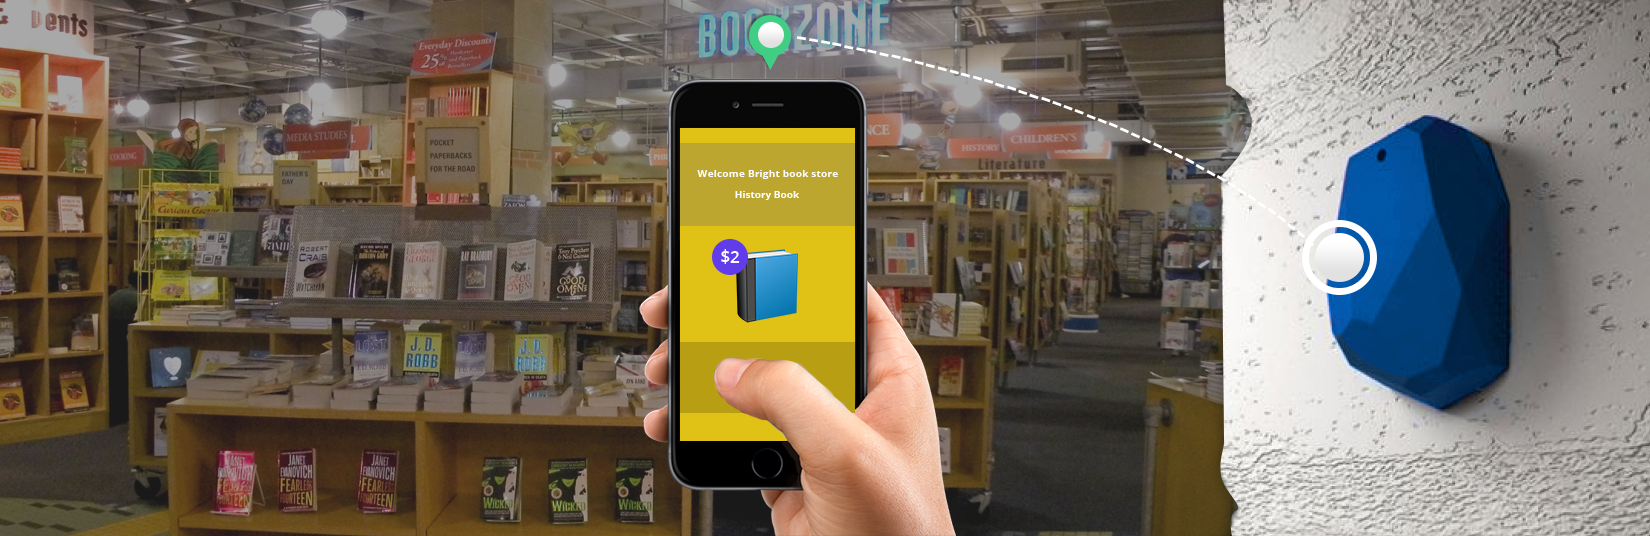 bookstore-Using-beacon-students